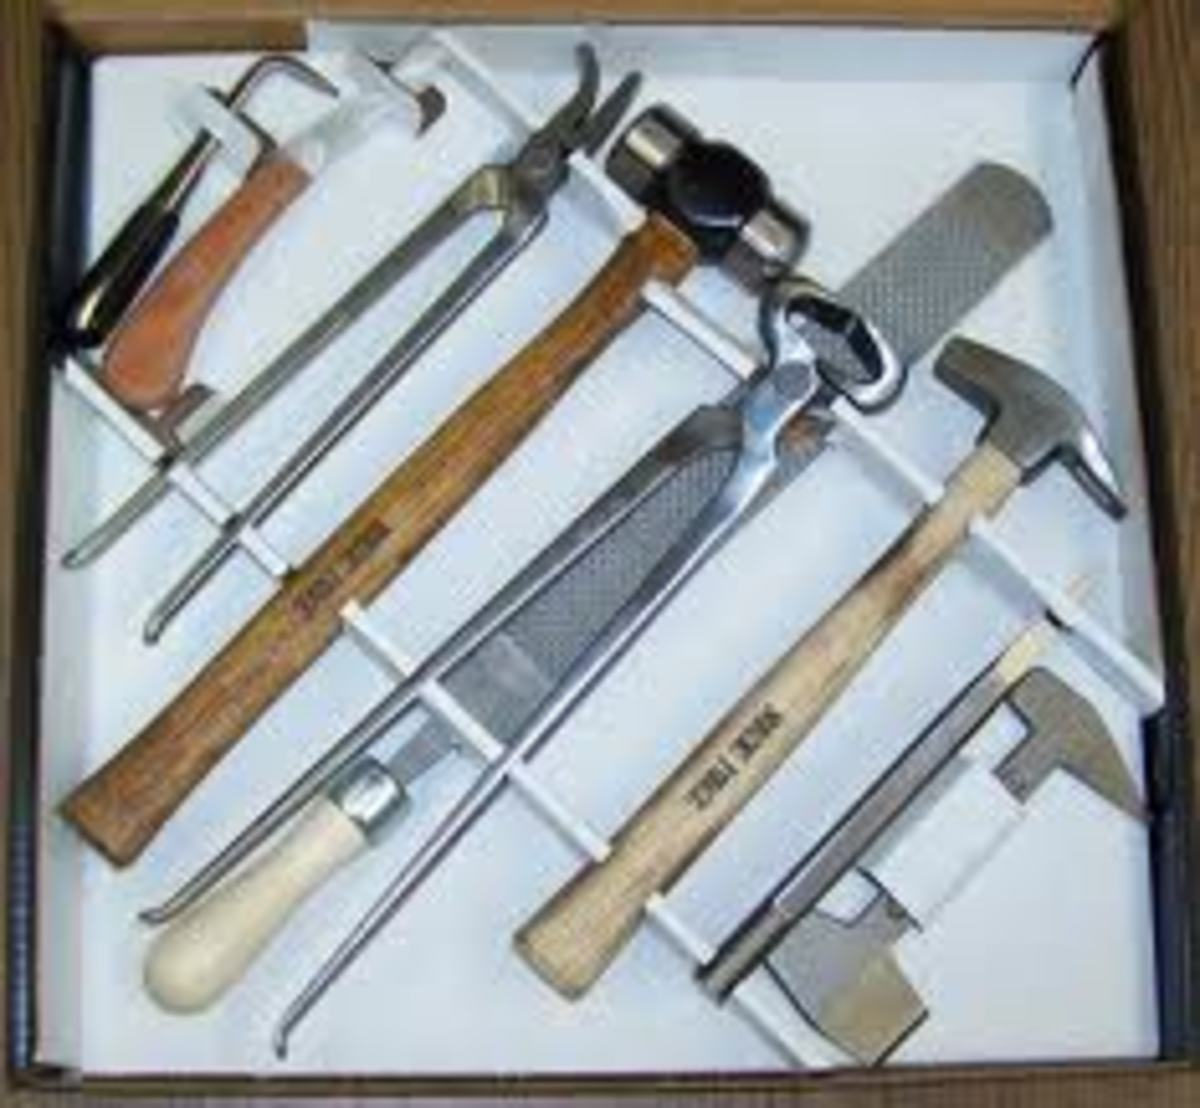 Farrier Tool Set from Cottage Craft Works